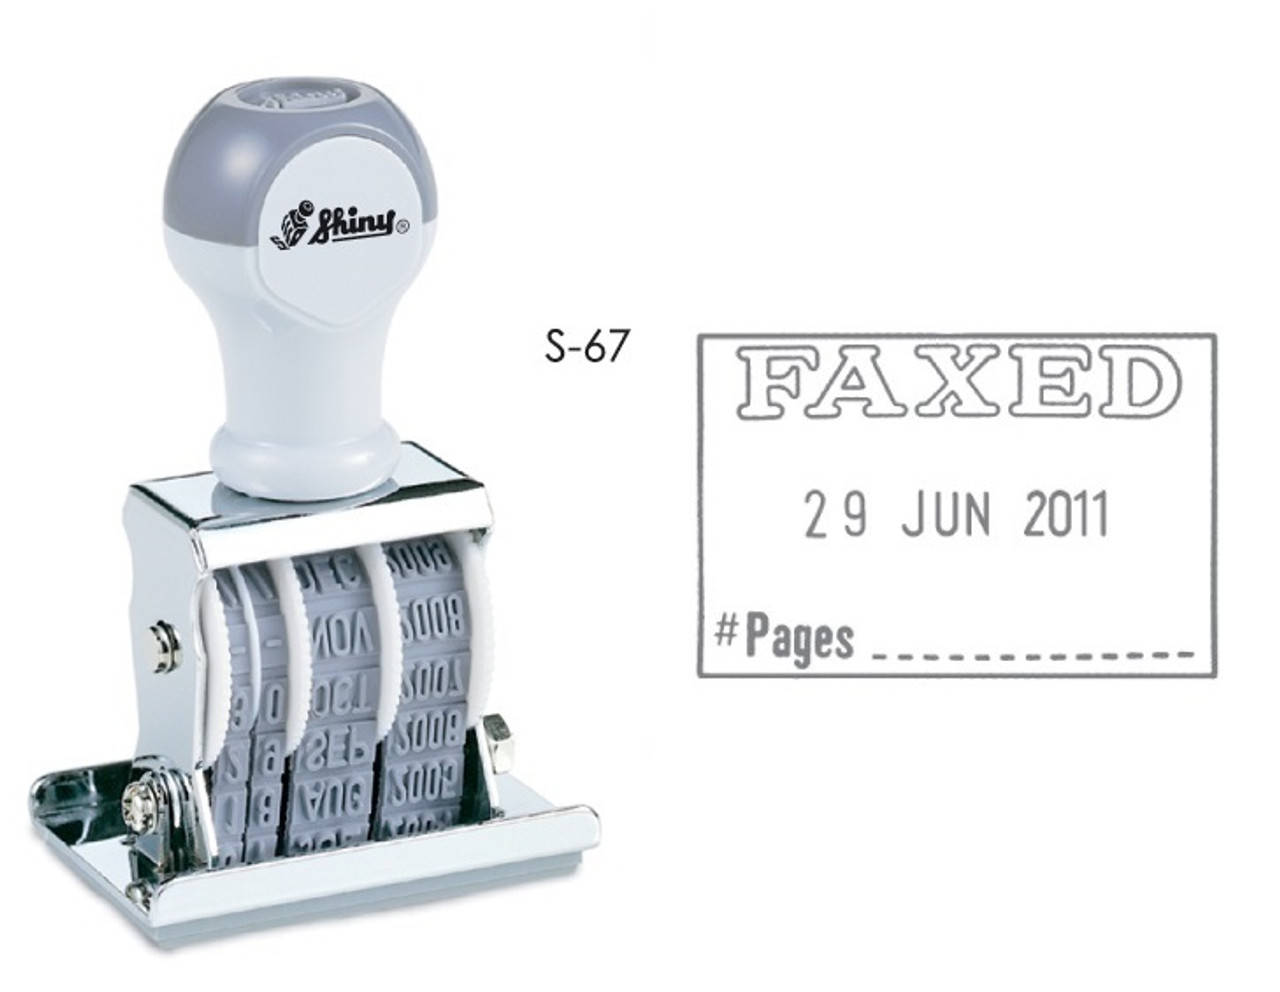 new style dd628 16397 STAEDTLER 9S67 DIE PLATE DATE STAMP WITH ADJUSTABLE DATE - FAXED